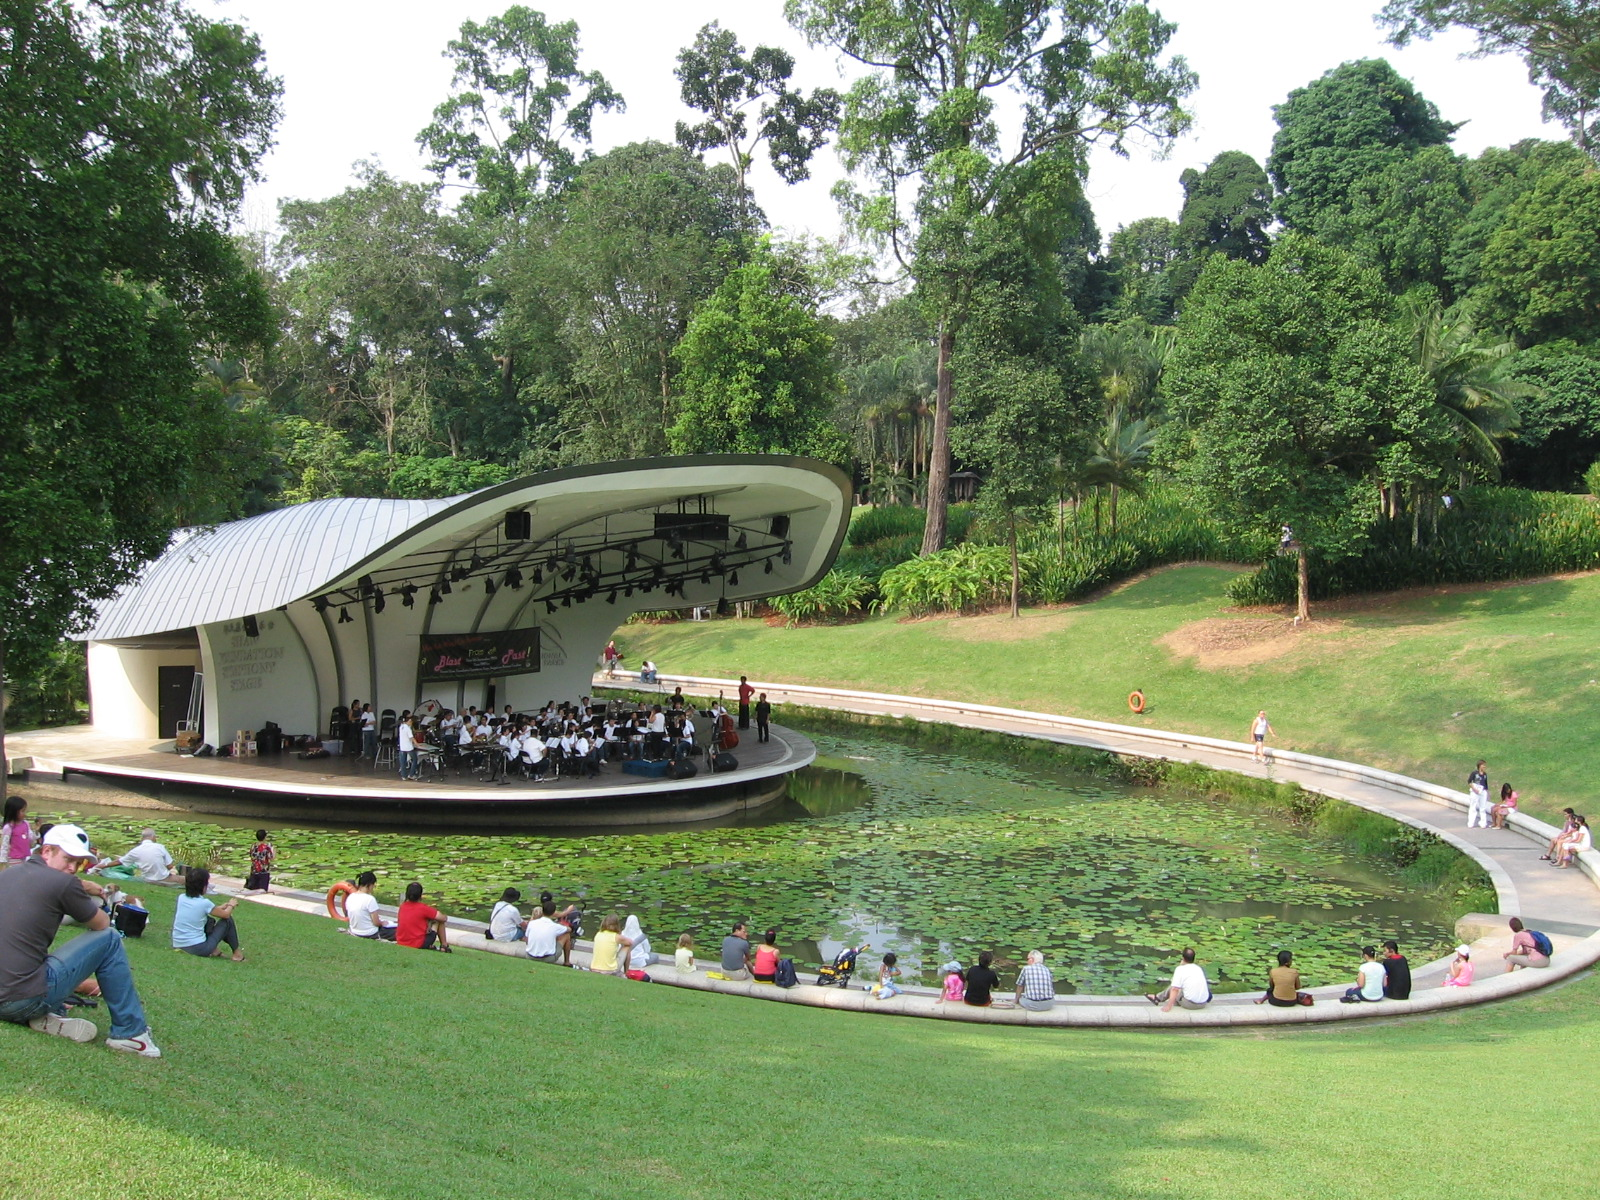 Beau File:Singapore Botanic Gardens, Symphony Lake 22, Sep 06.JPG